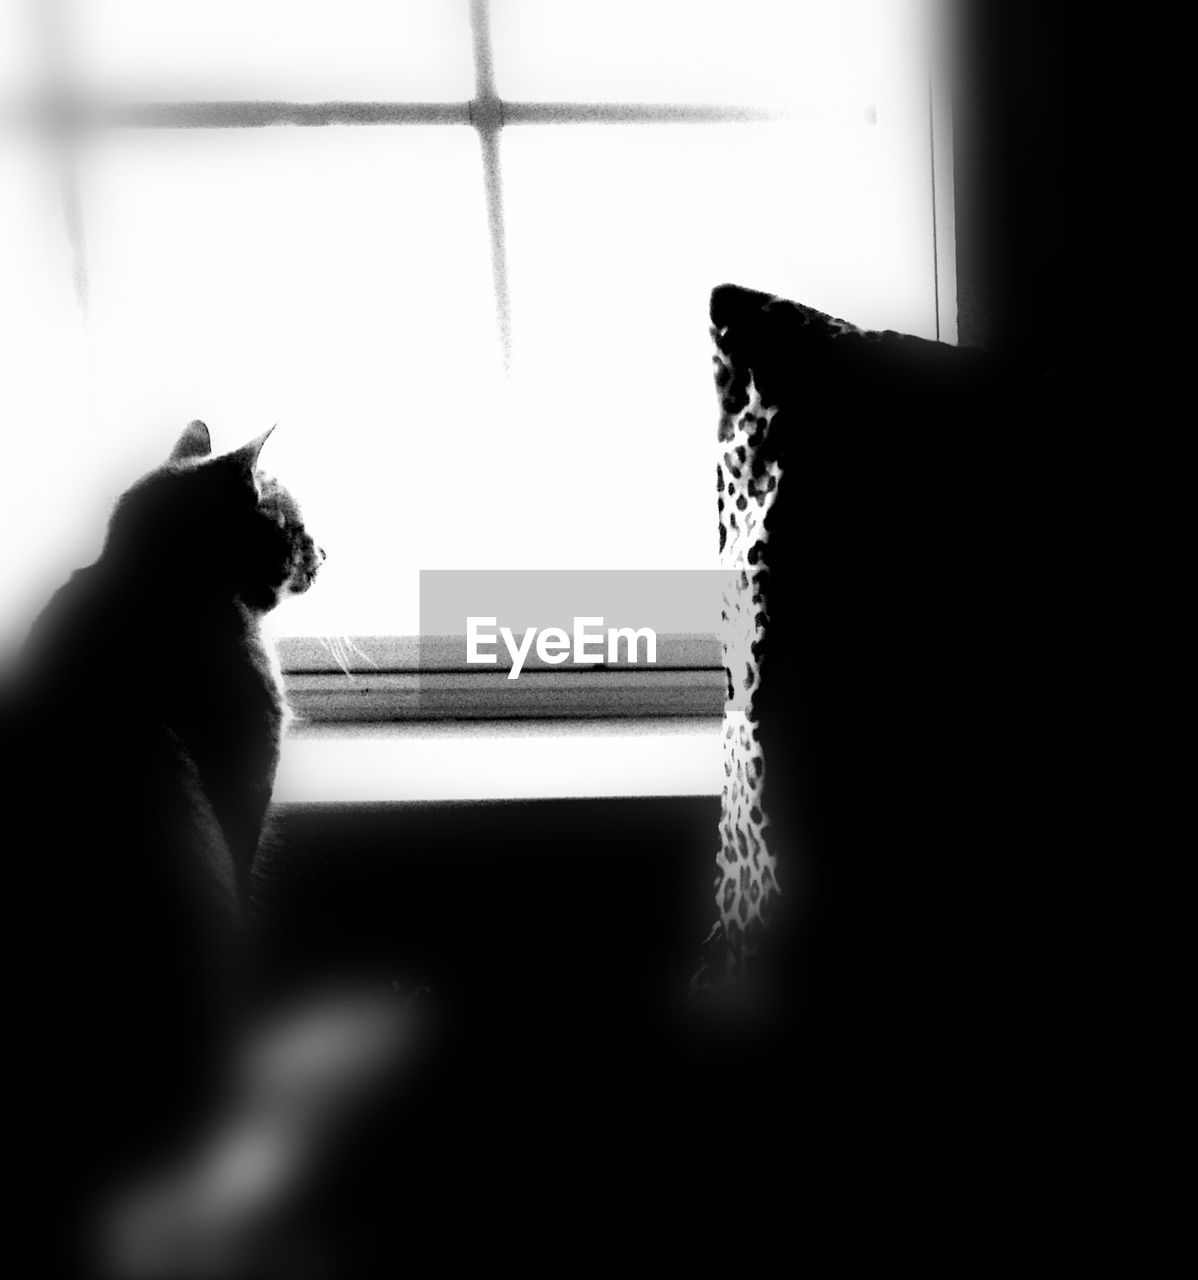 mammal, window, domestic animals, pets, domestic, one animal, cat, indoors, feline, domestic cat, vertebrate, one person, silhouette, day, home interior, real people, human hand, hand